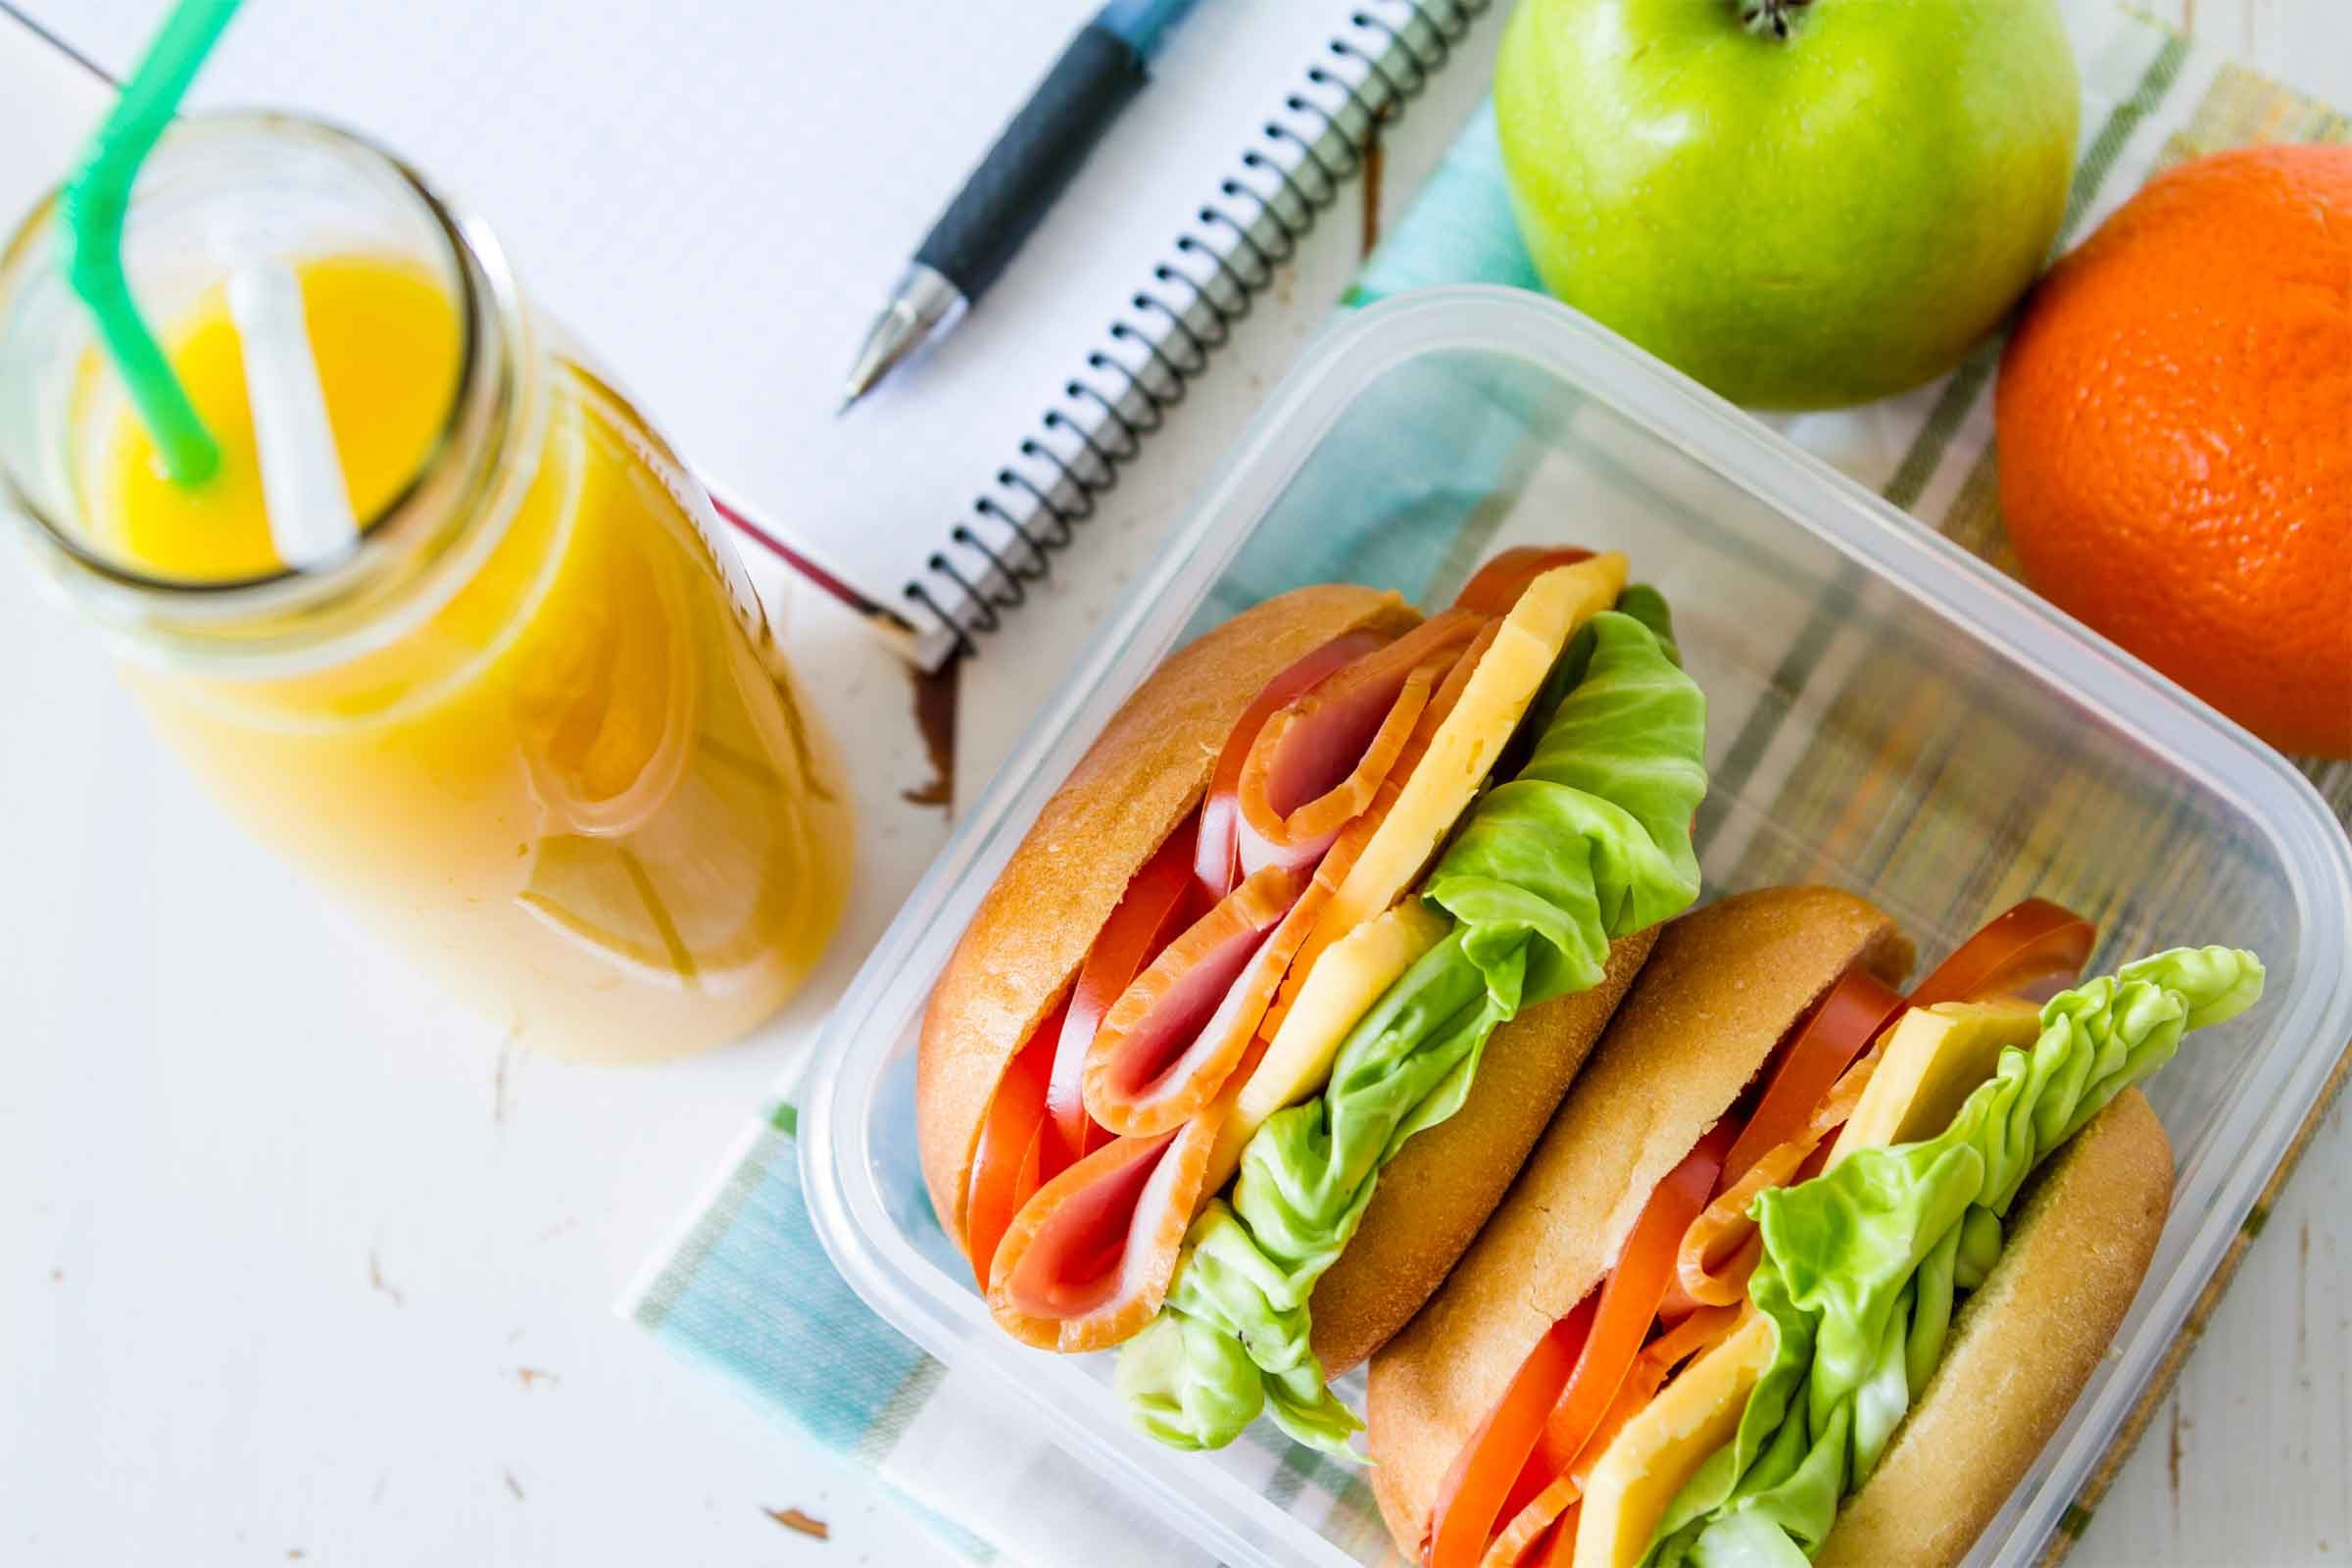 03-healthy-lunch-break-packed-lunch.jpg (2400×1600)